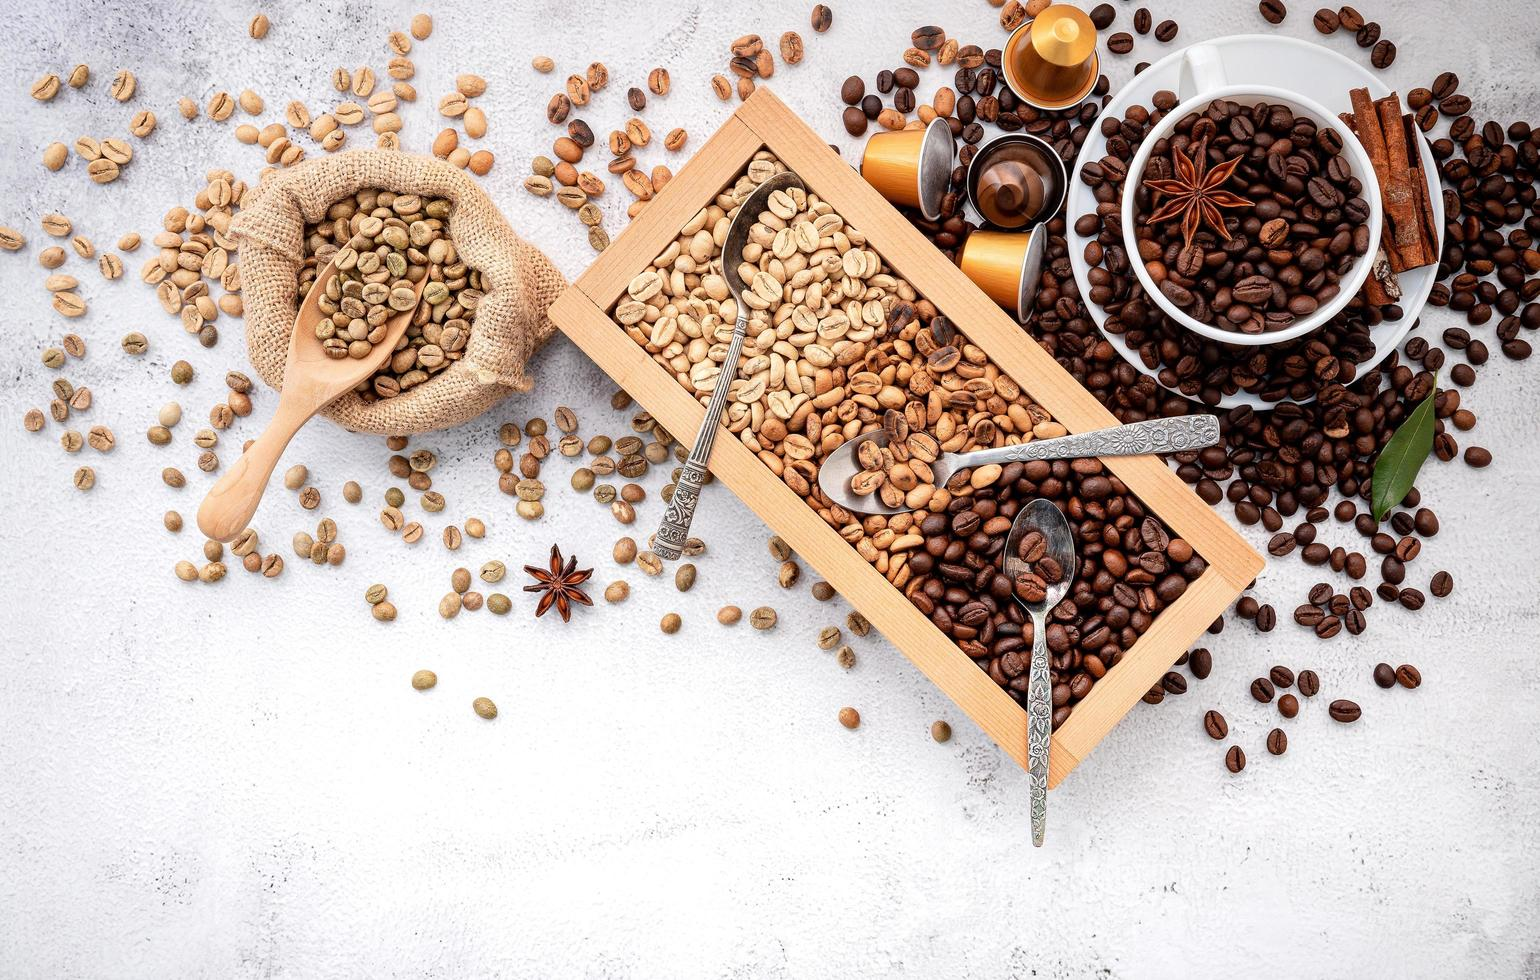 Roasted coffee beans with scoop photo